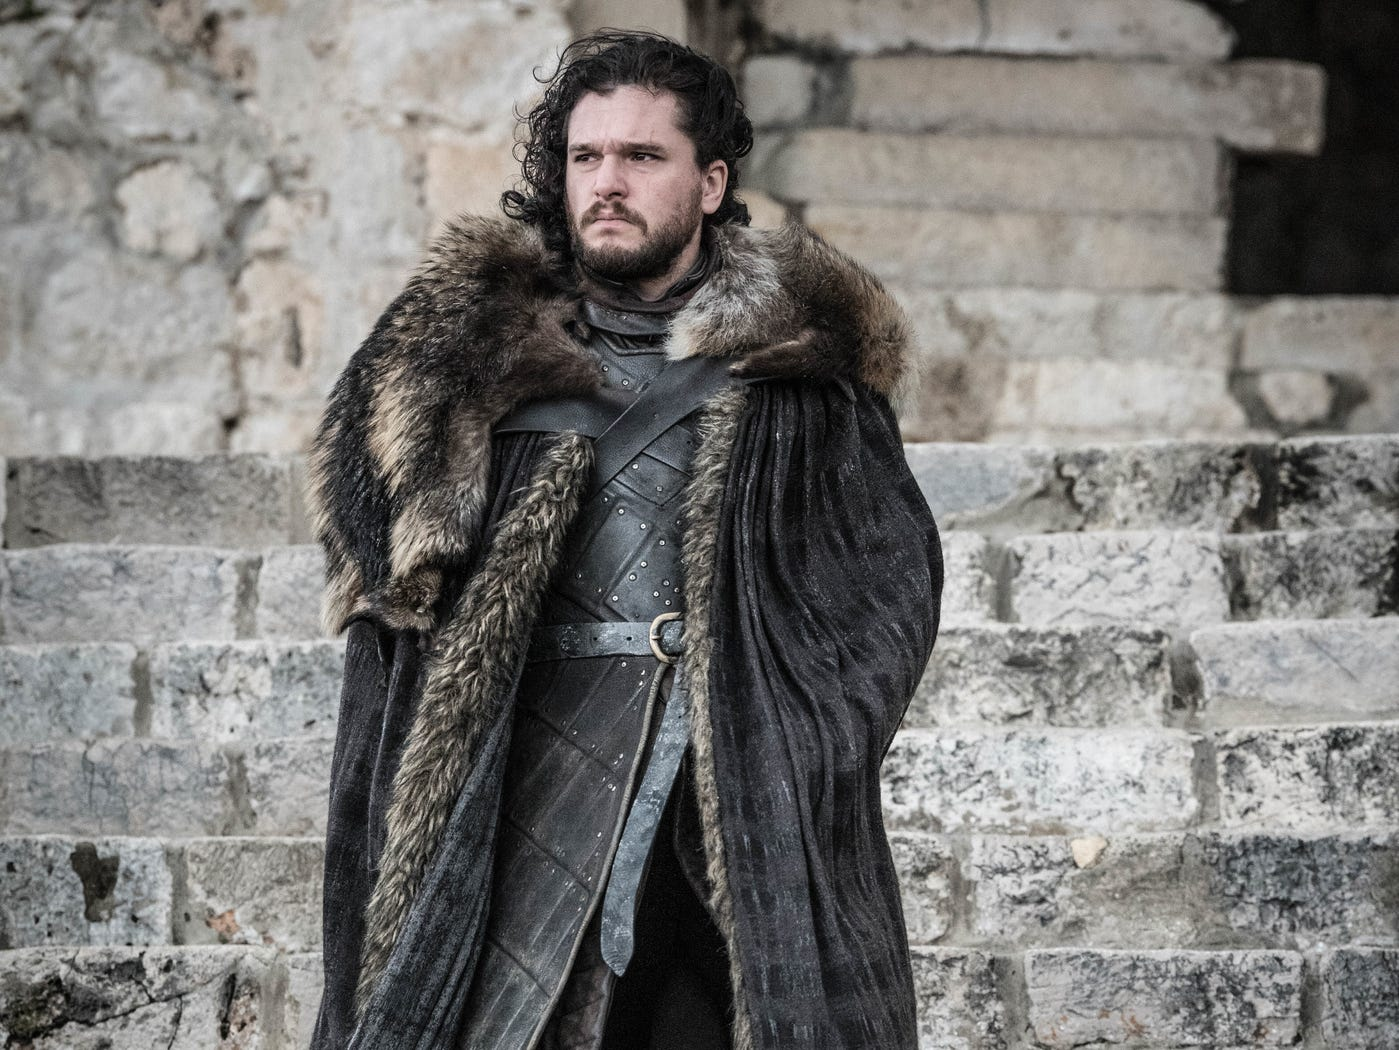 'Game of Thrones' series finale recap: A disaster ending that fans didn't deserve